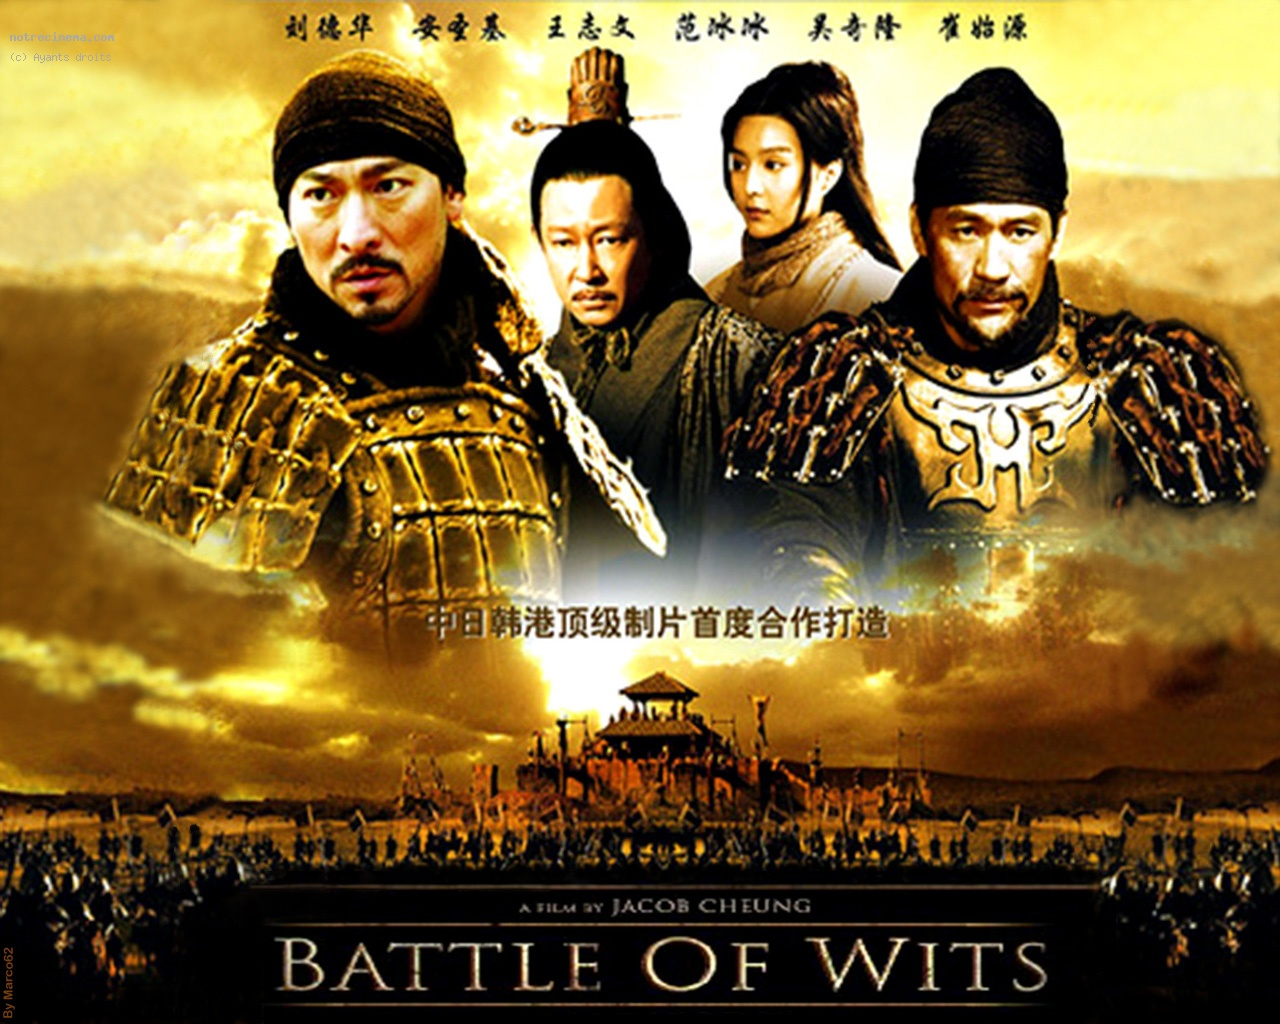 Battle Of The Warriors Backgrounds, Compatible - PC, Mobile, Gadgets| 1280x1024 px